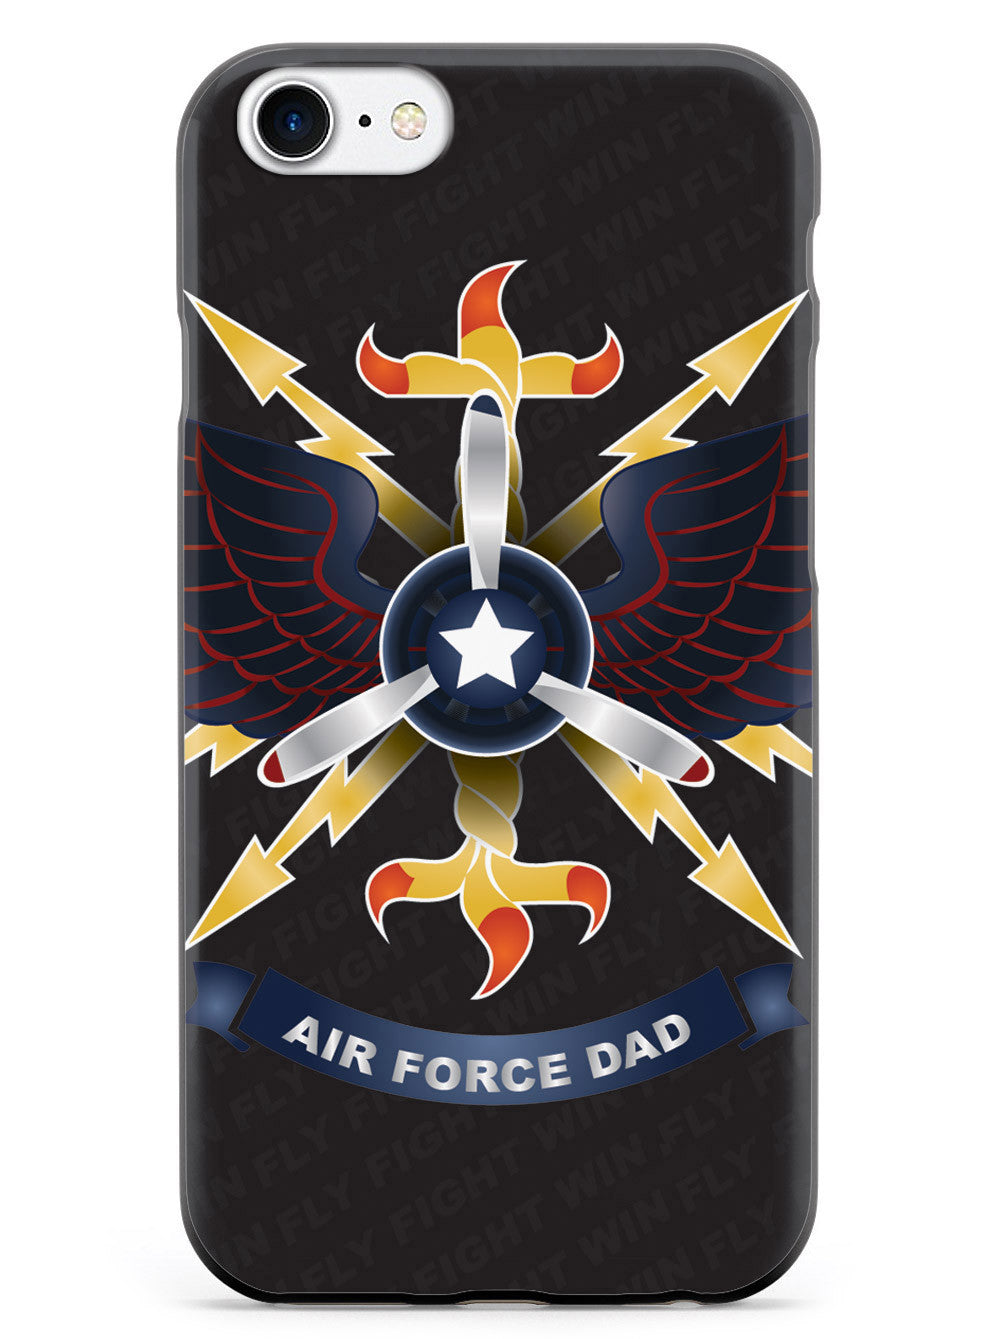 Air Force Dad Case